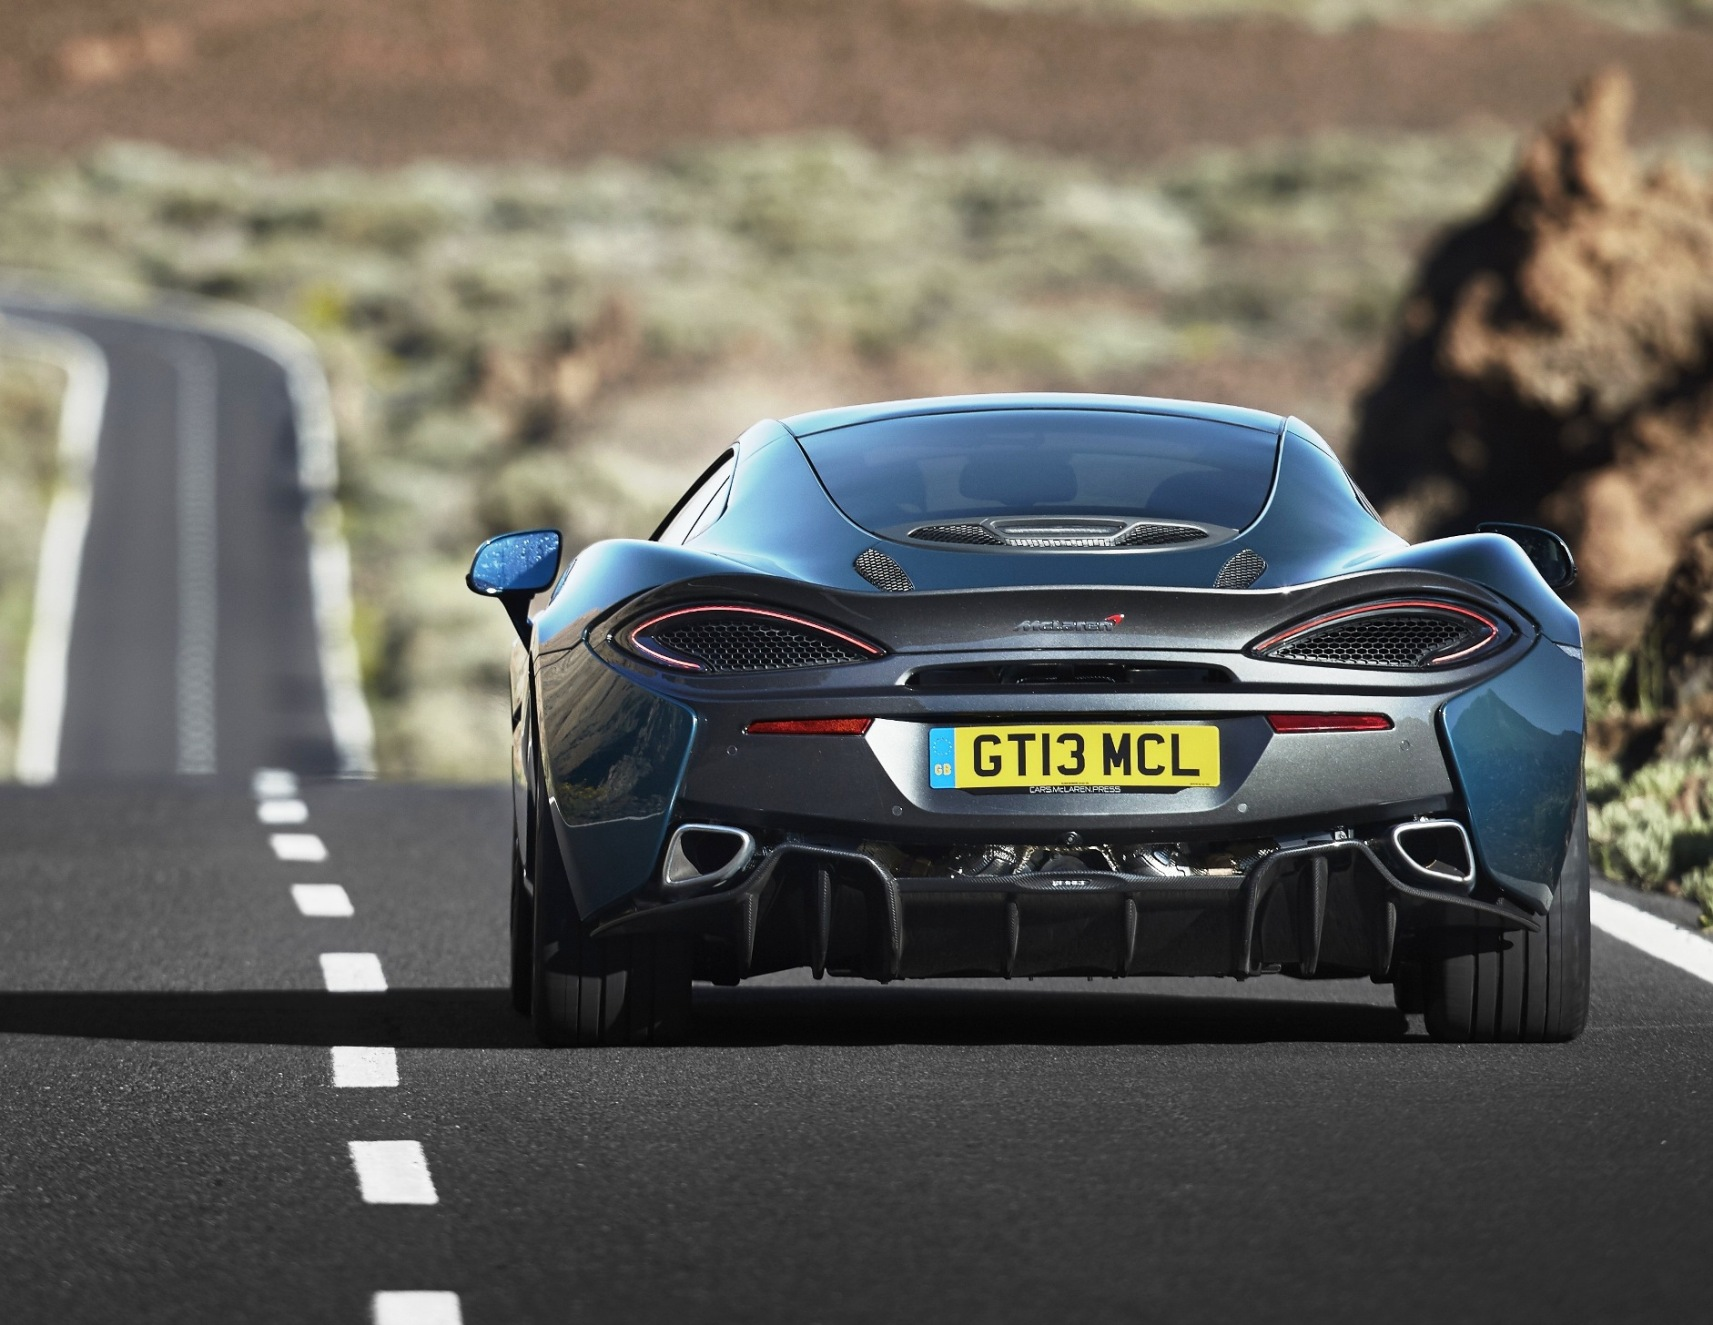 mclaren-570gt-rear-view-action